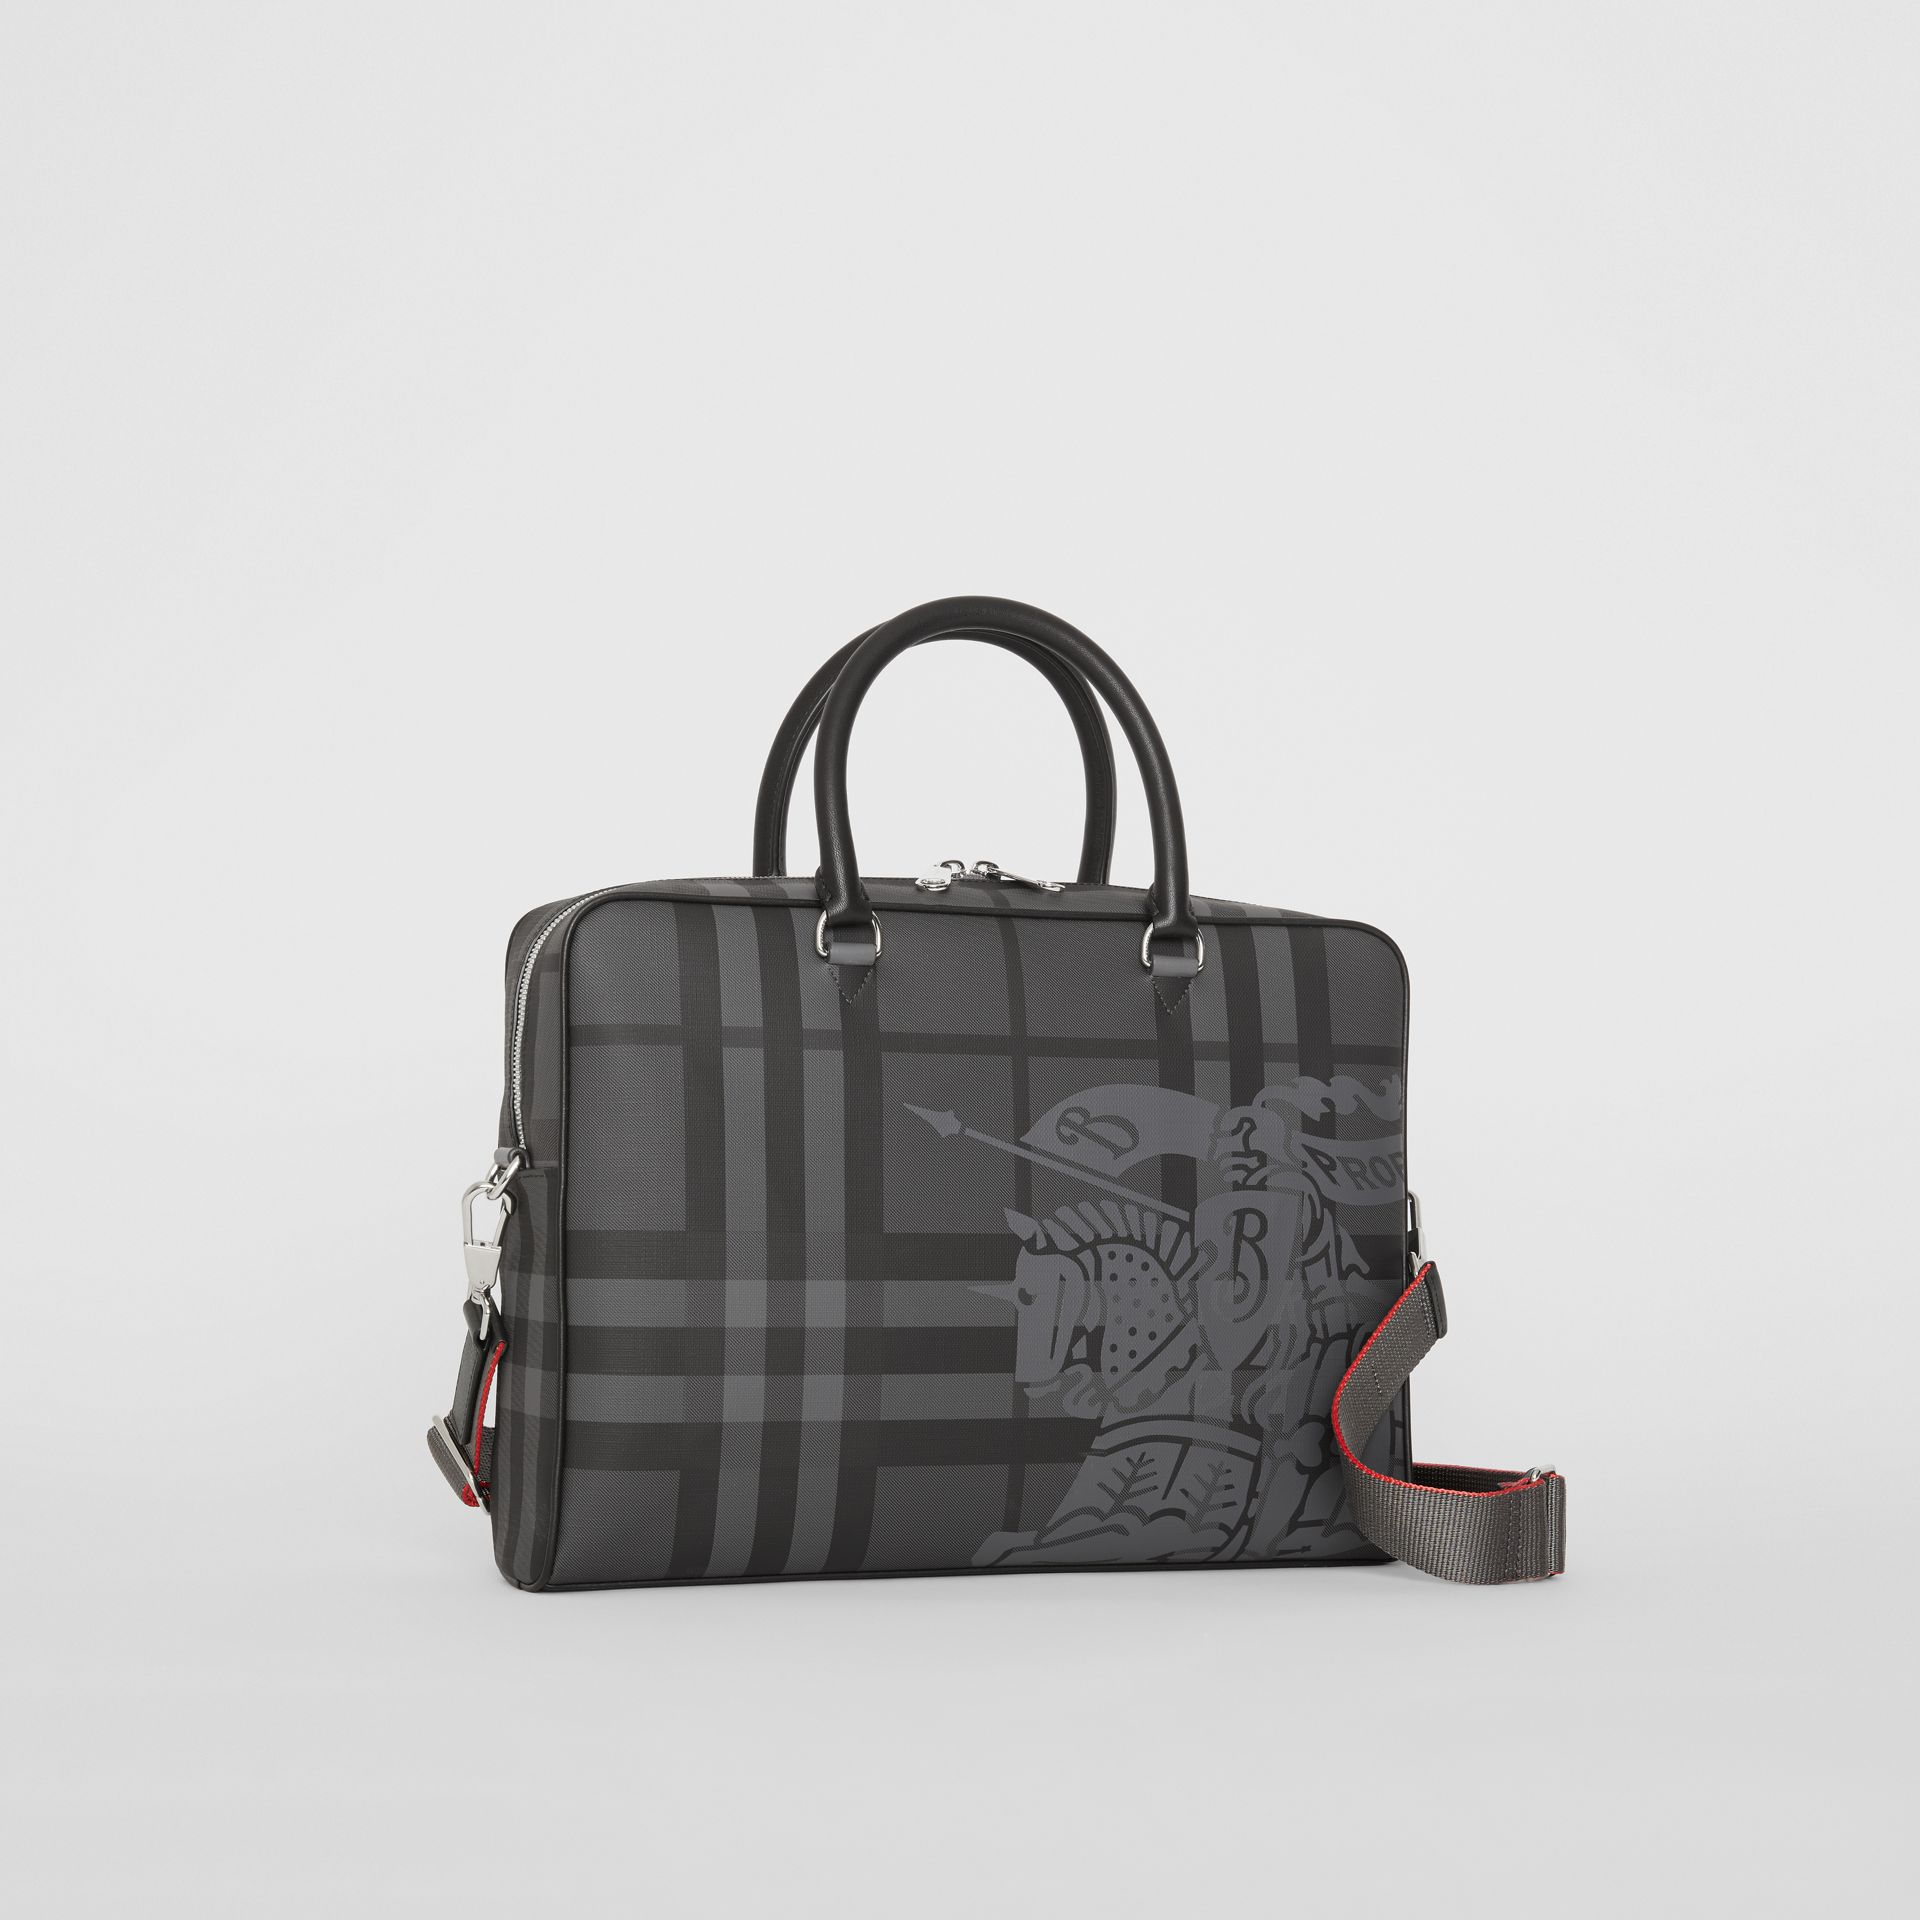 Attaché-case en cuir à motif London check et emblème du Cavalier (Anthracite/noir) - Homme | Burberry Canada - photo de la galerie 6